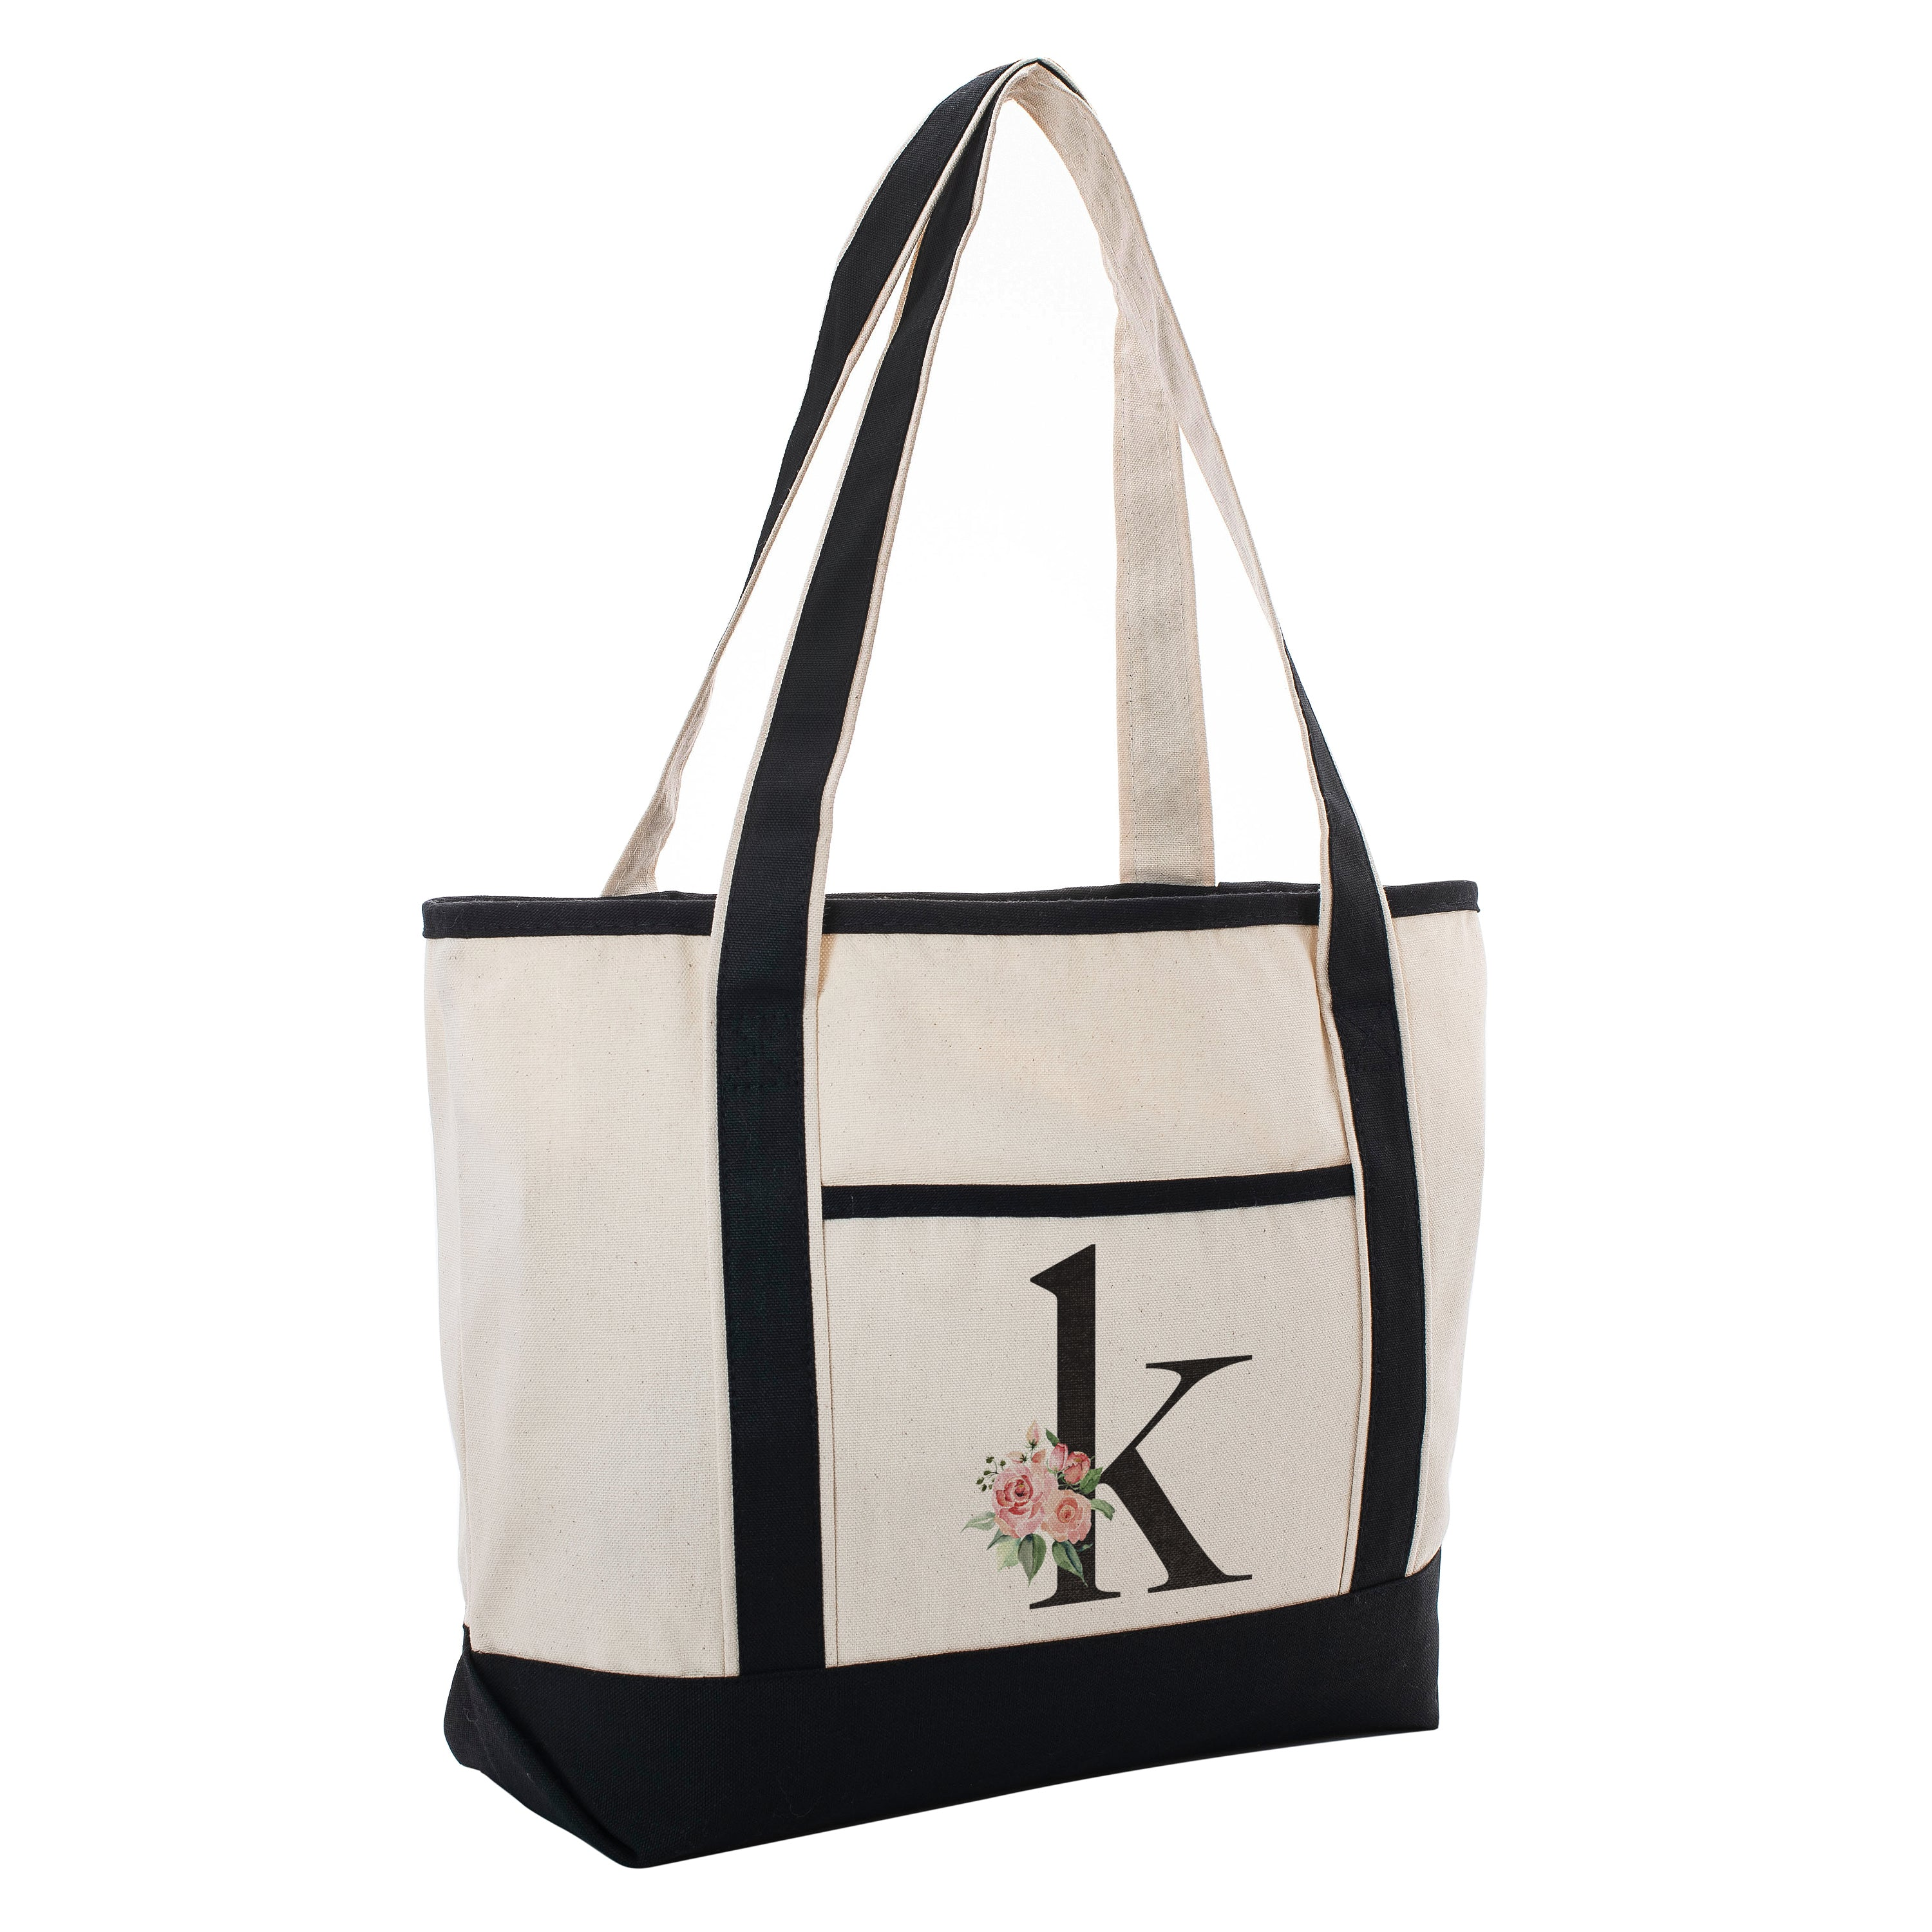 with Pocket I Design 7 Grocery Vacation Beach Bachelor and etc Pilates Yoga Floral Luxury Cotton Canvas Tote Bag for Daily